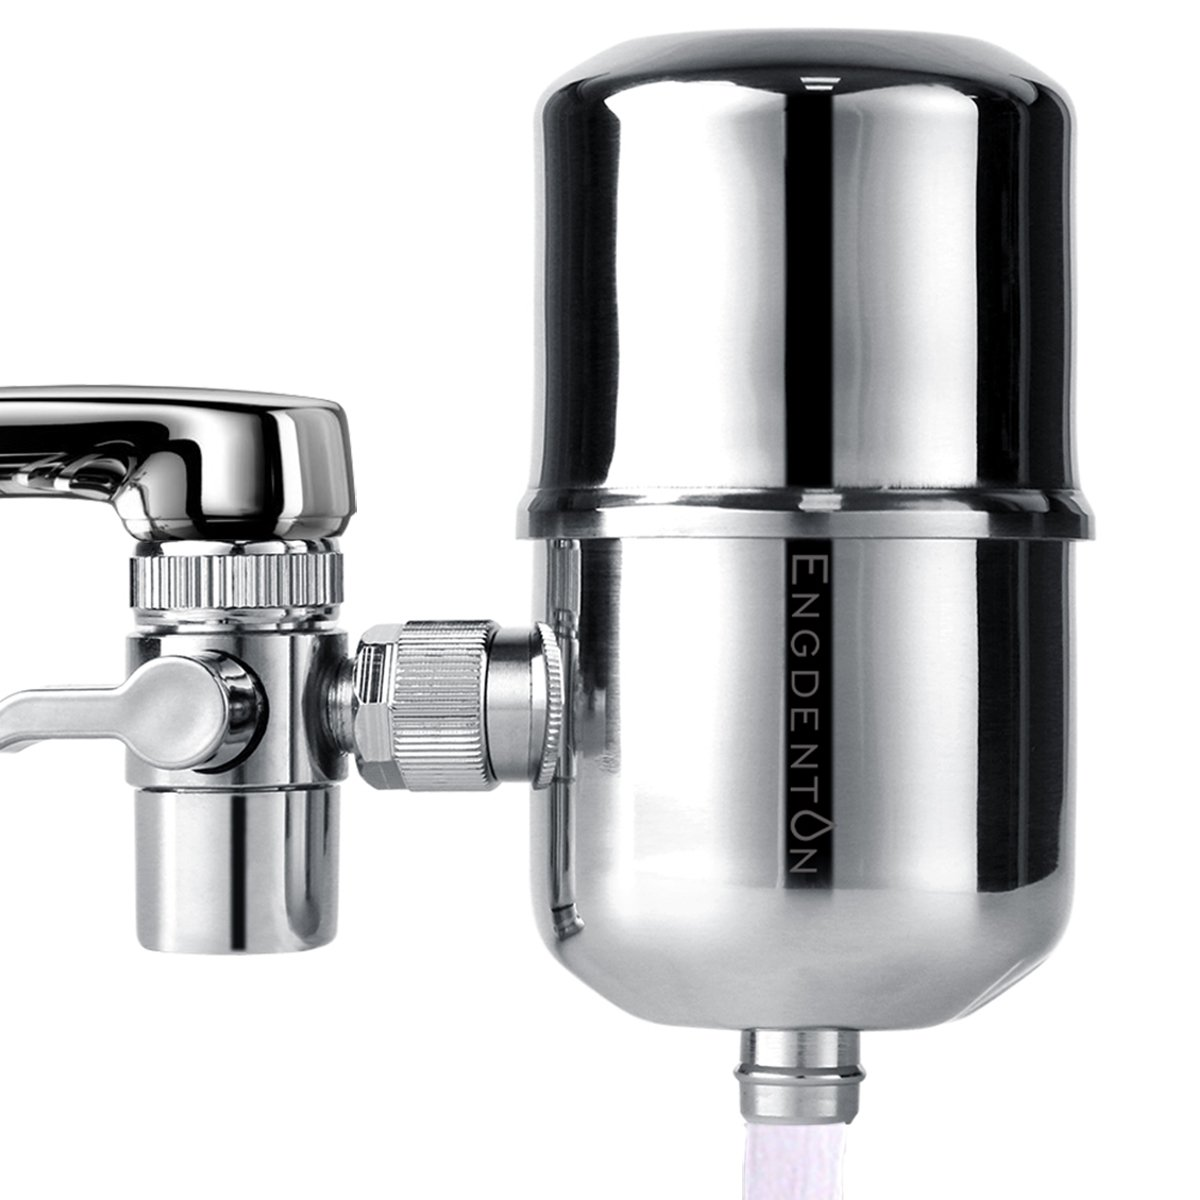 Engdenton Faucet Water Filter Stainless-Steel Reduce Chlorine High Water Flow, Water Purifier with Ultra Adsorptive Material, Water Filters for Faucets-Fits Standard Faucets